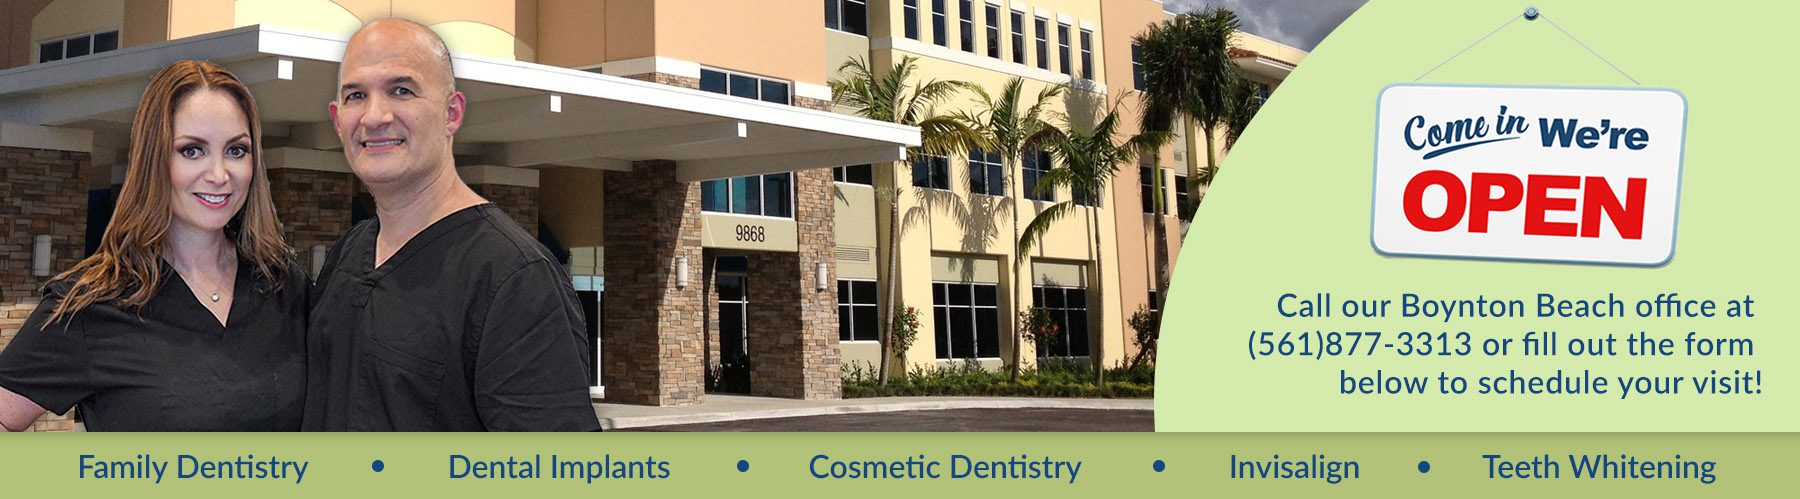 Boynton Beach Family Dentist